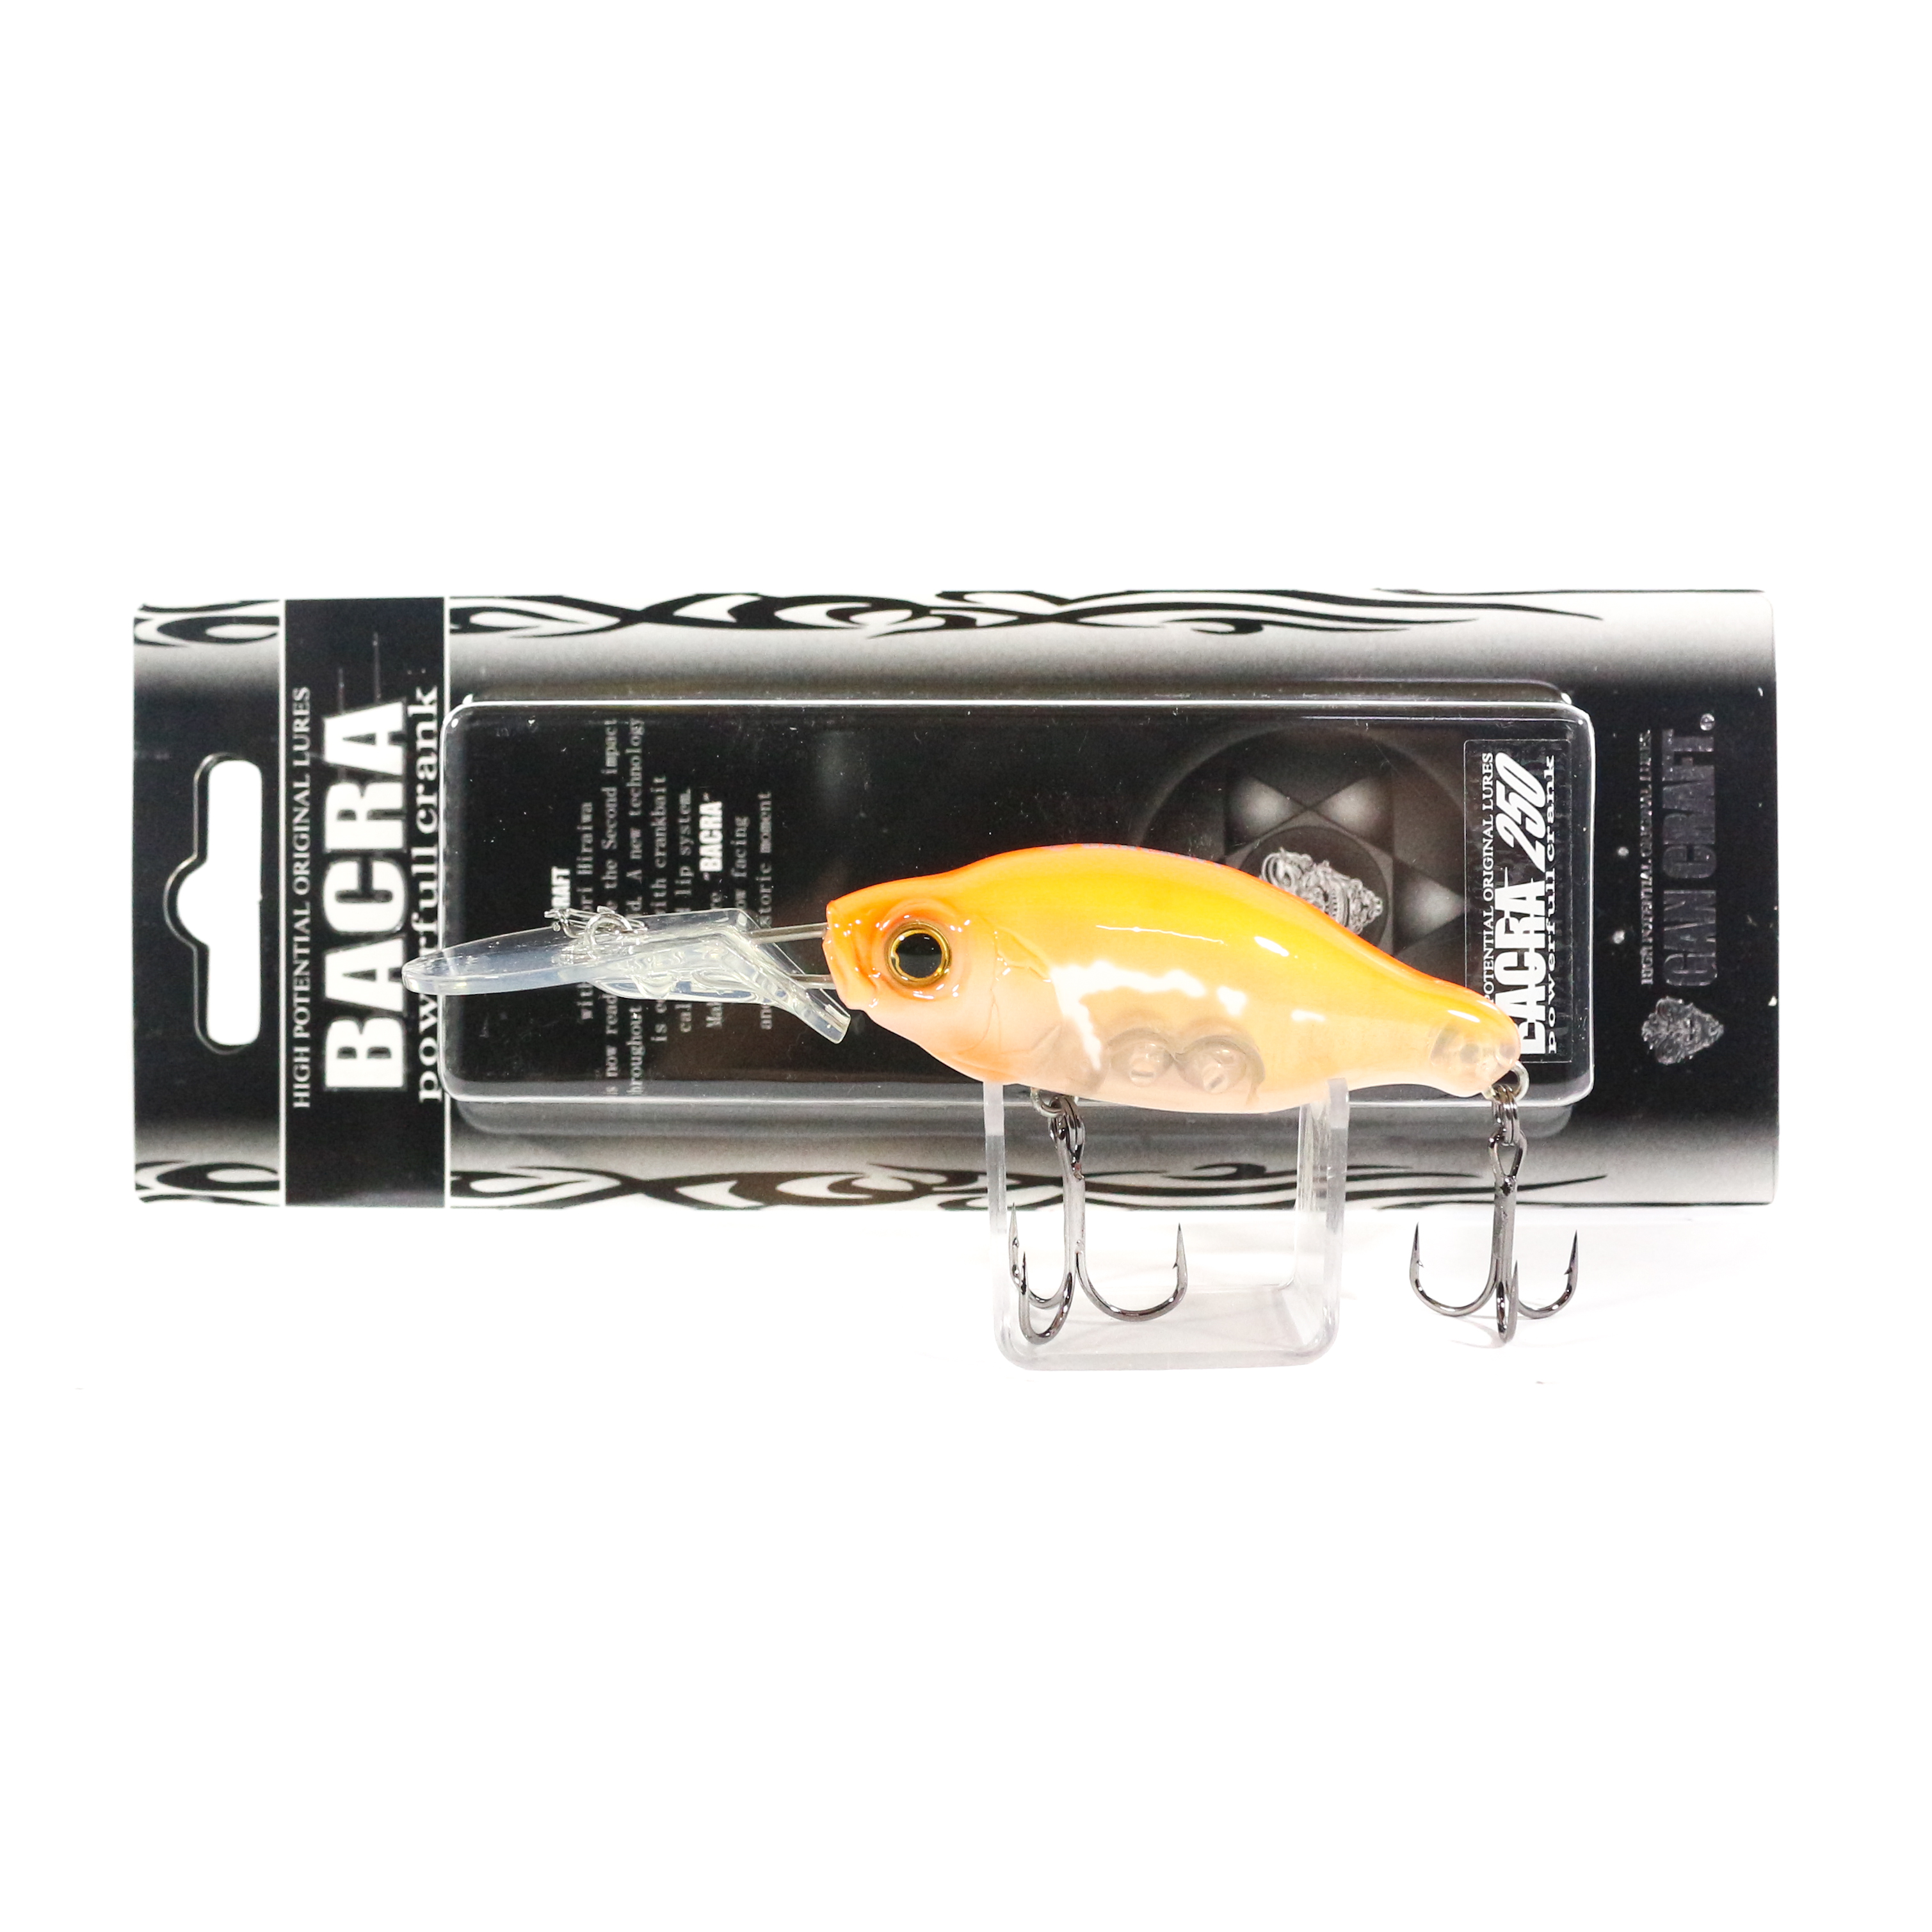 Gan Craft Bacra 250 Diving Crank Bait Floating Lure 04 (6348)